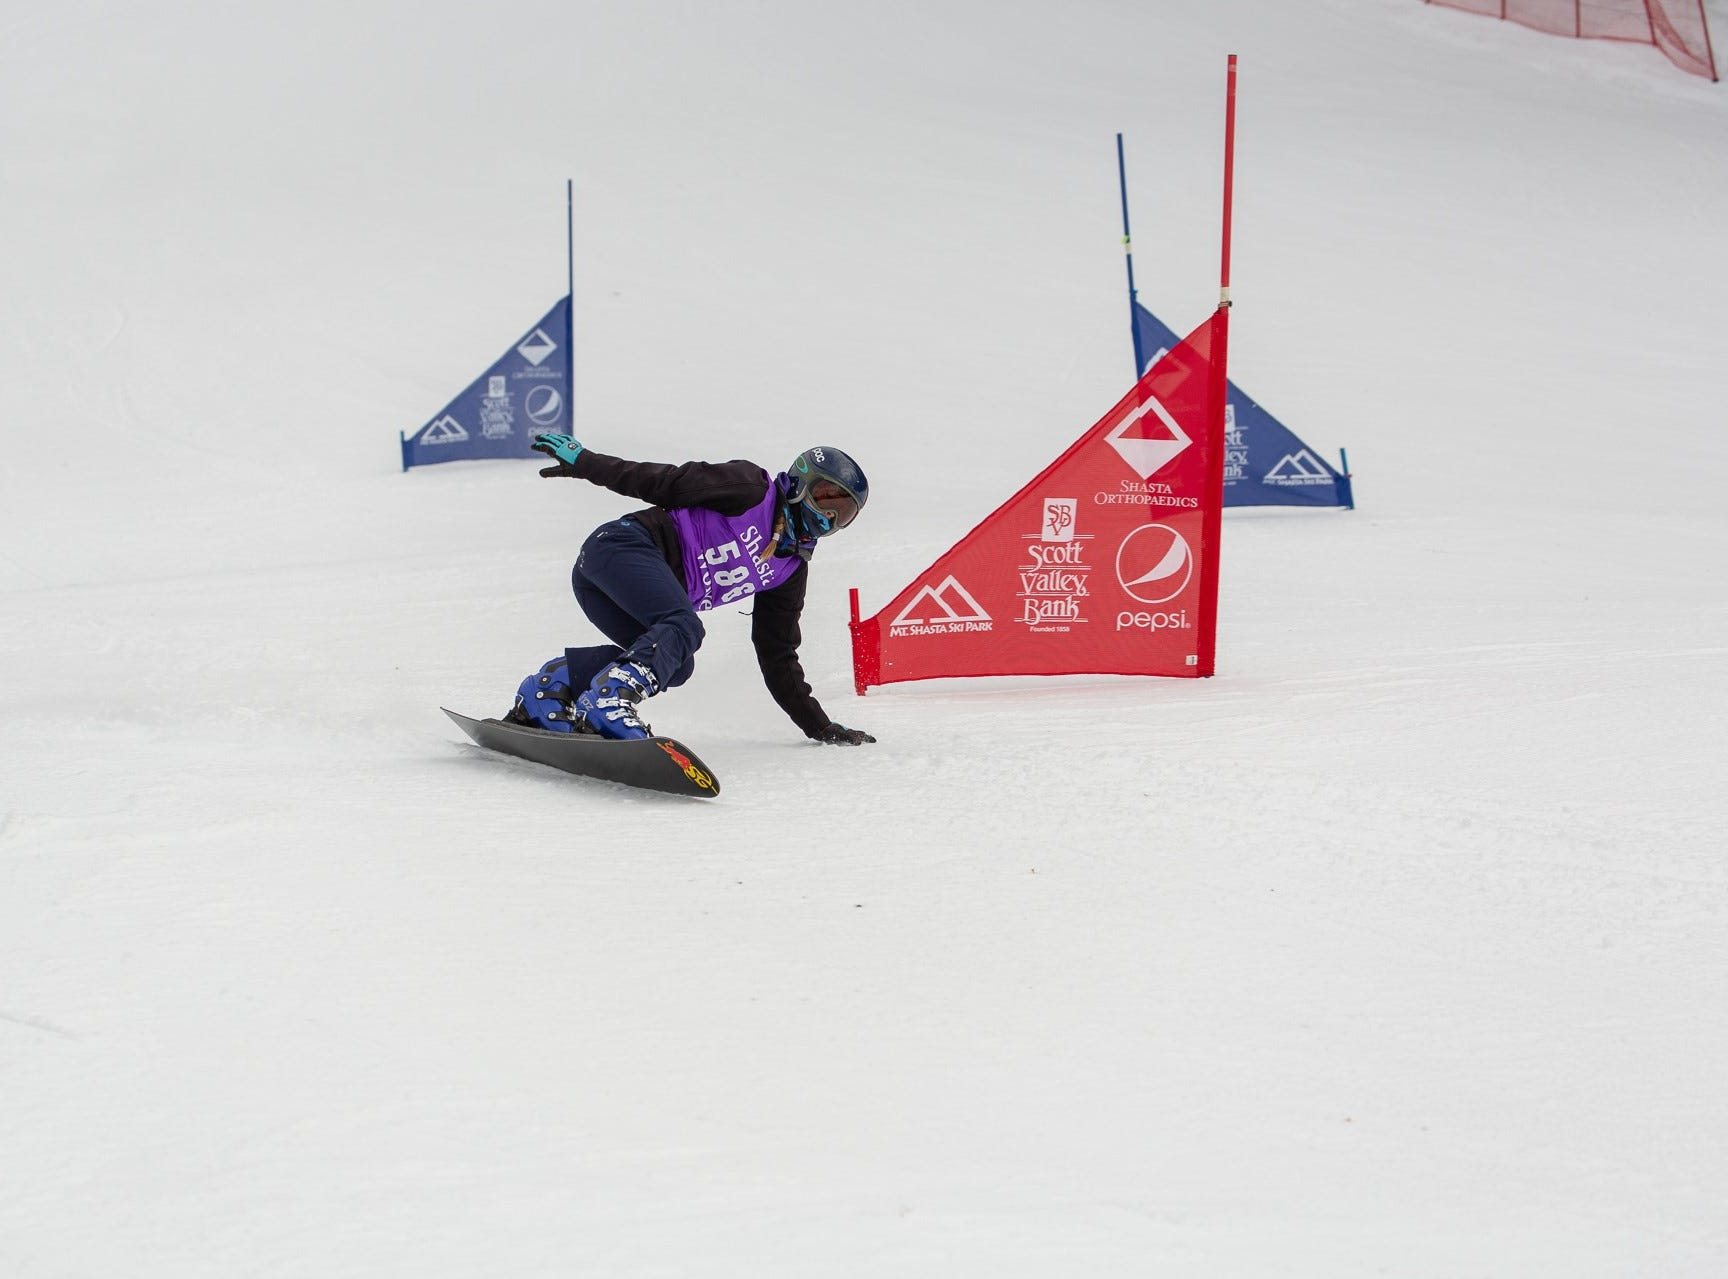 Sage Will of Shasta competes in the first high school snowboard meet of 2019 on Monday, Jan. 14 at Mt. Shasta Ski Park.